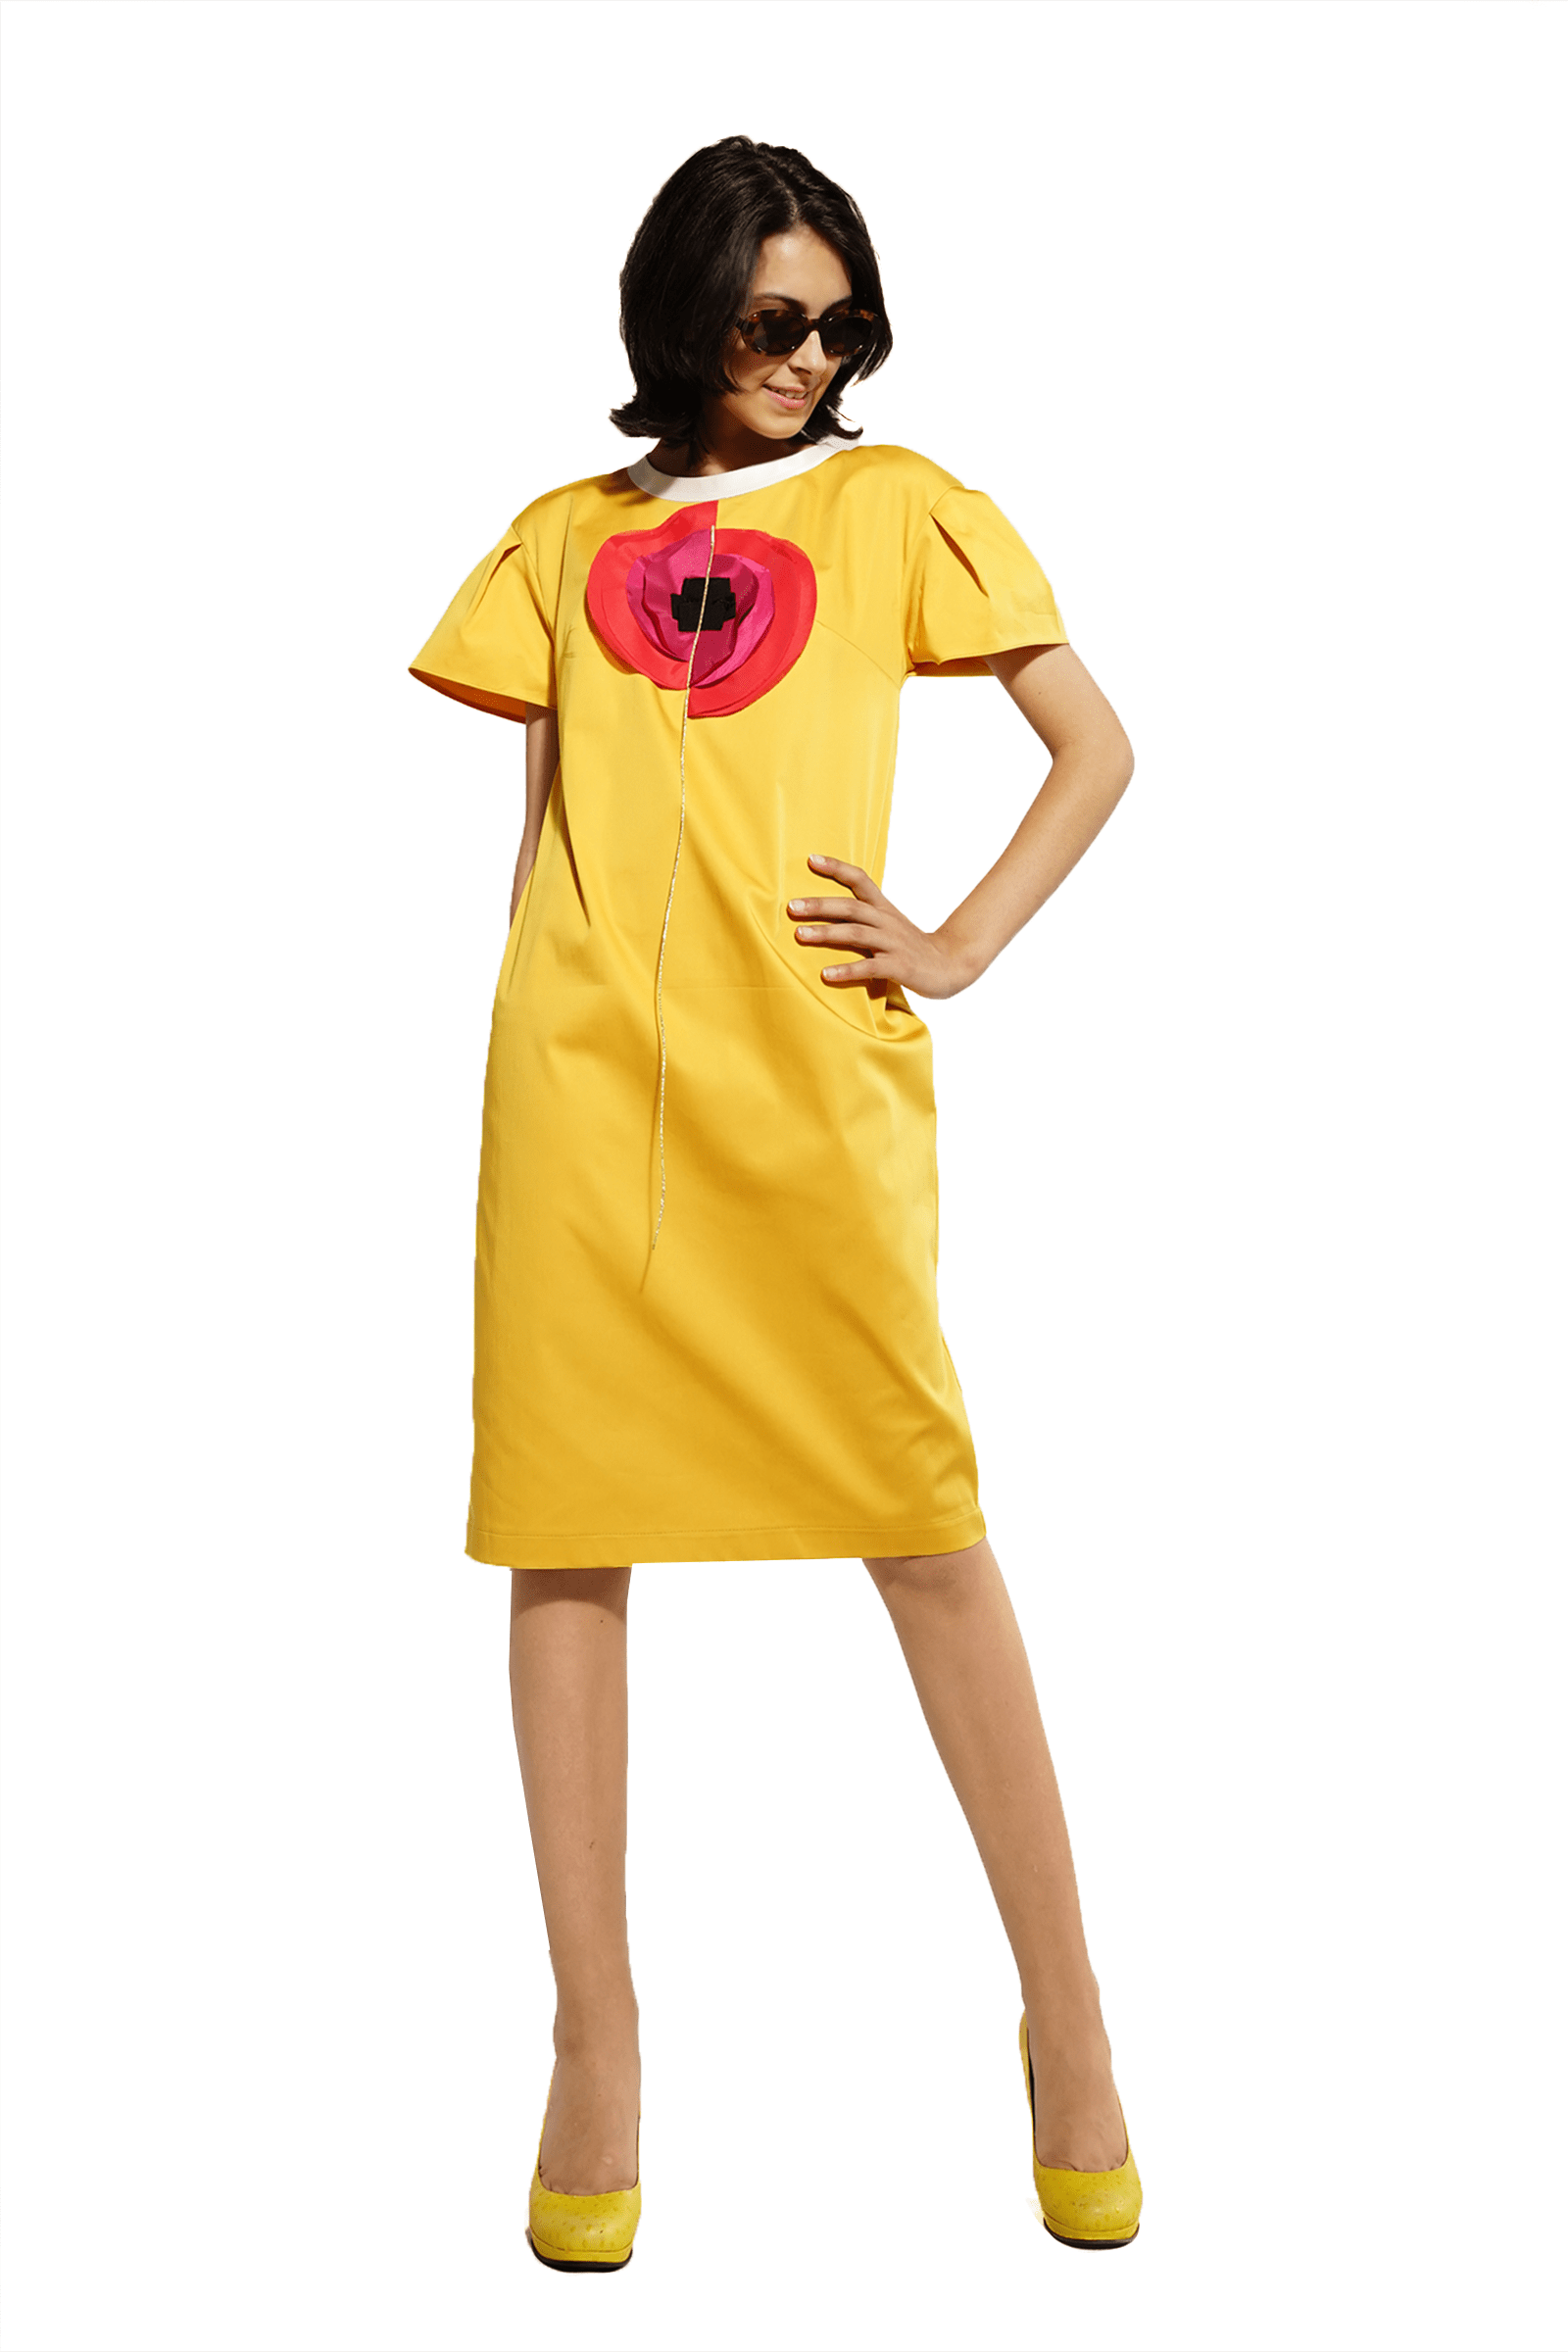 Yellow dress with poppies